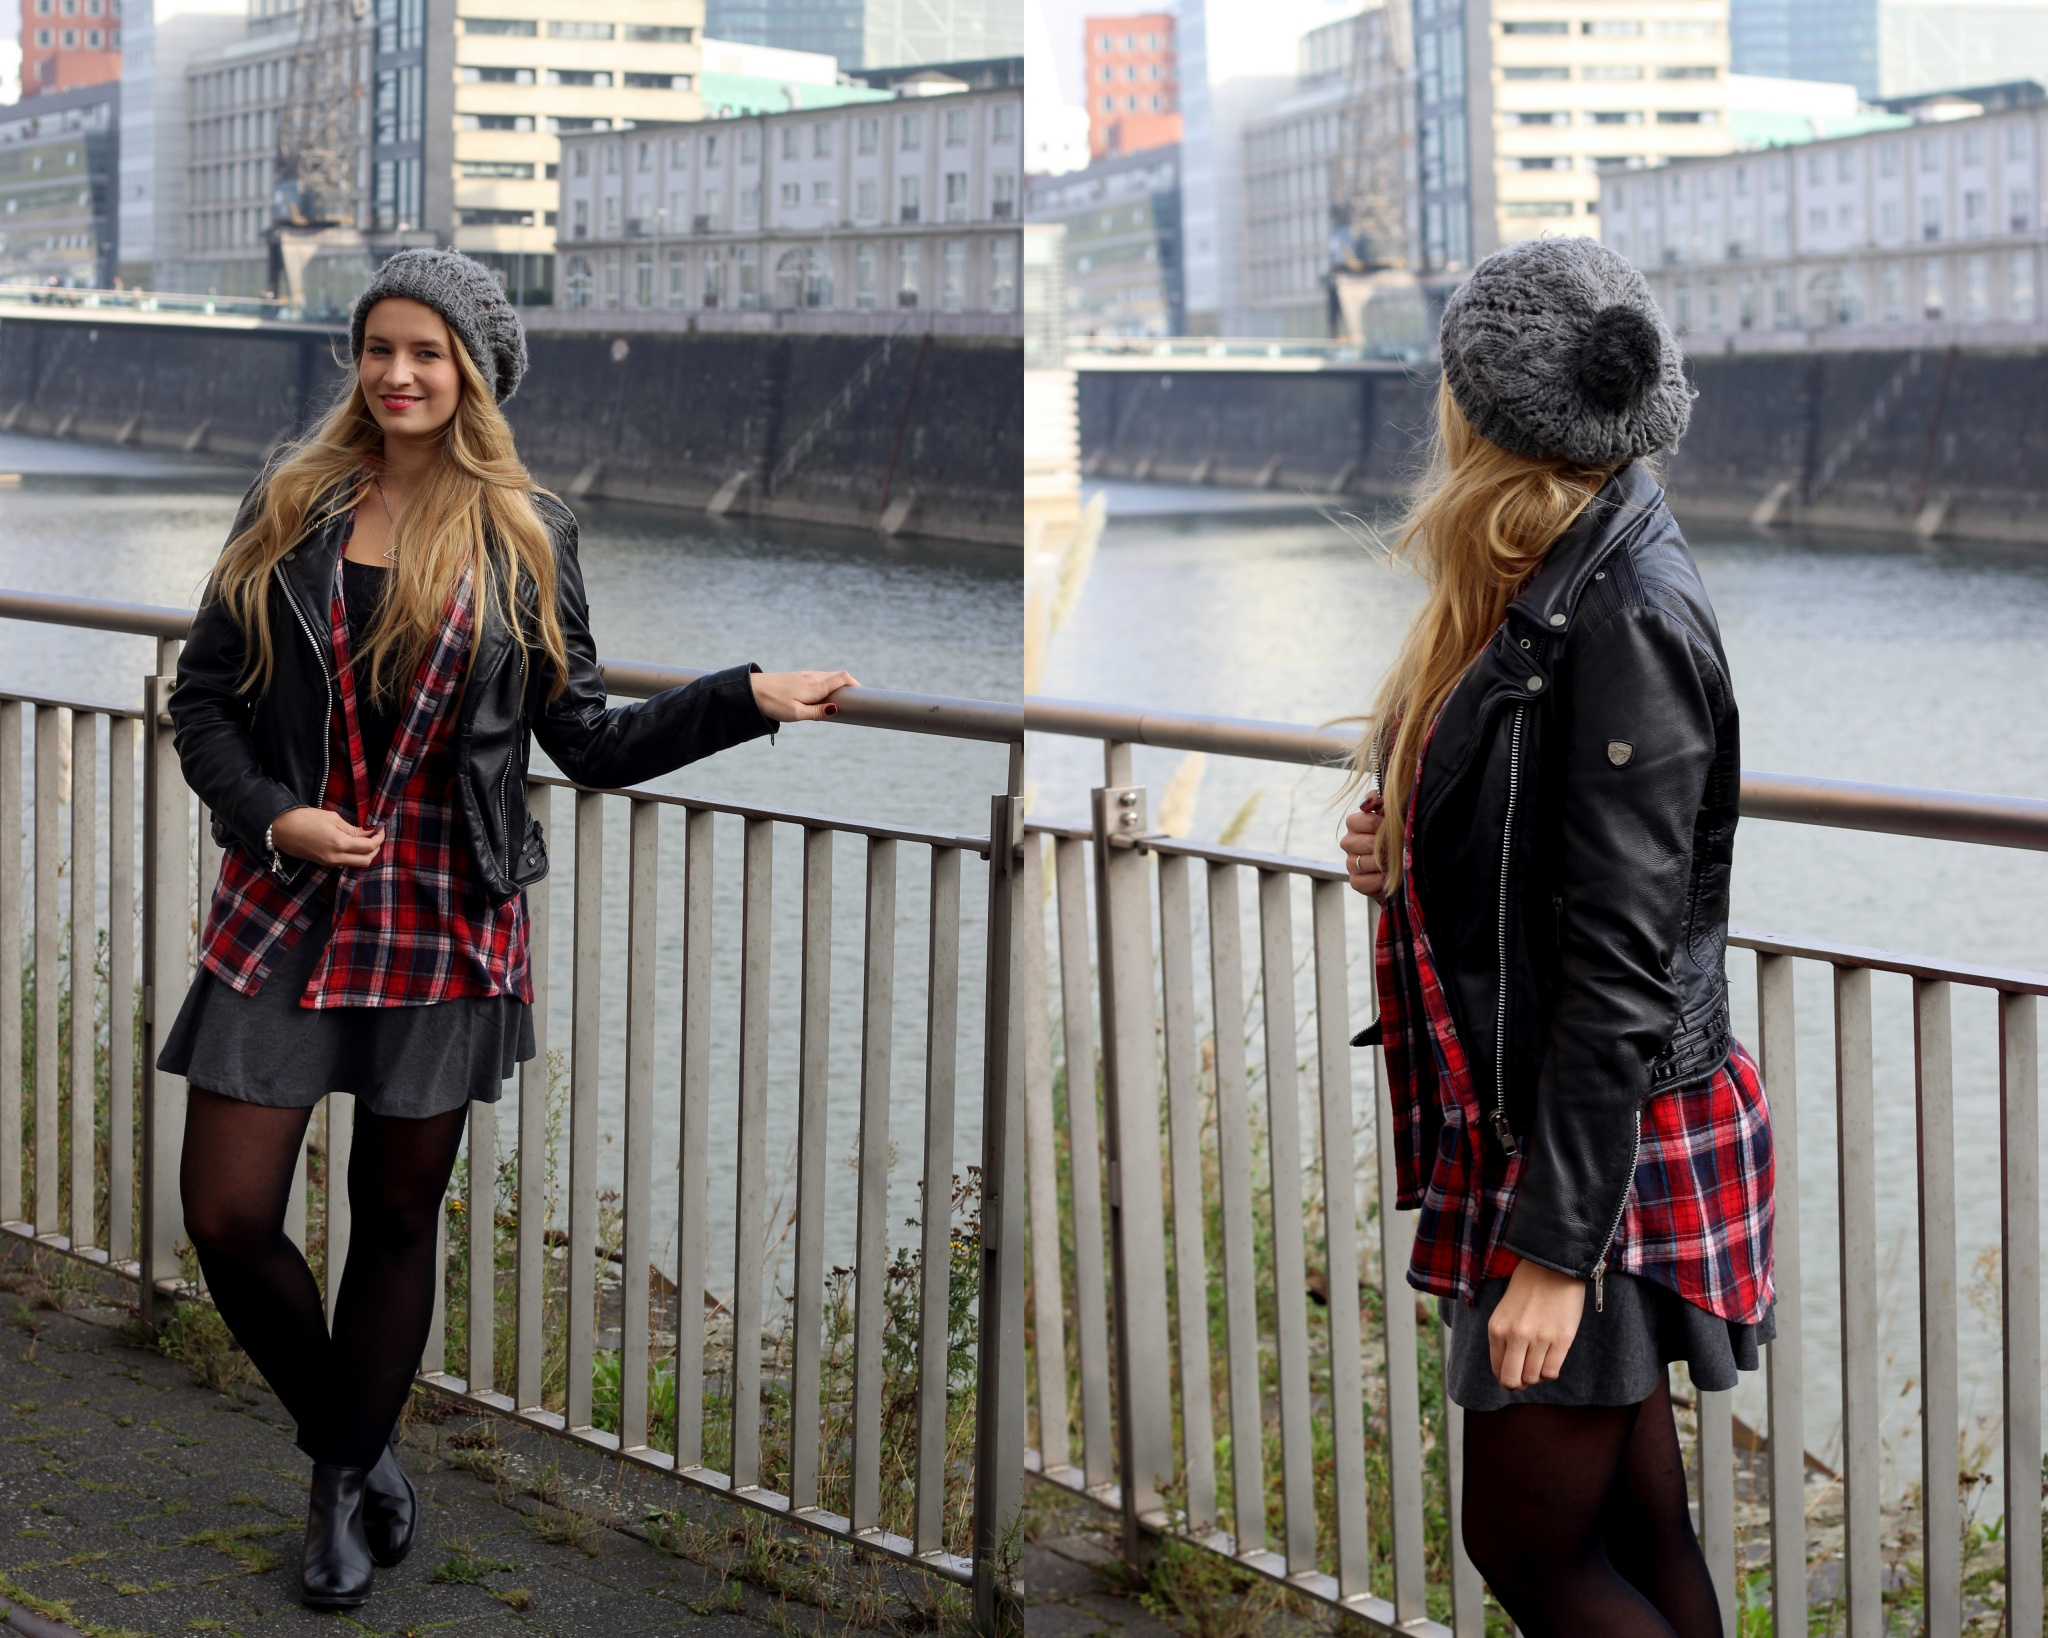 batch_Checkerd & Leather Outfit-001